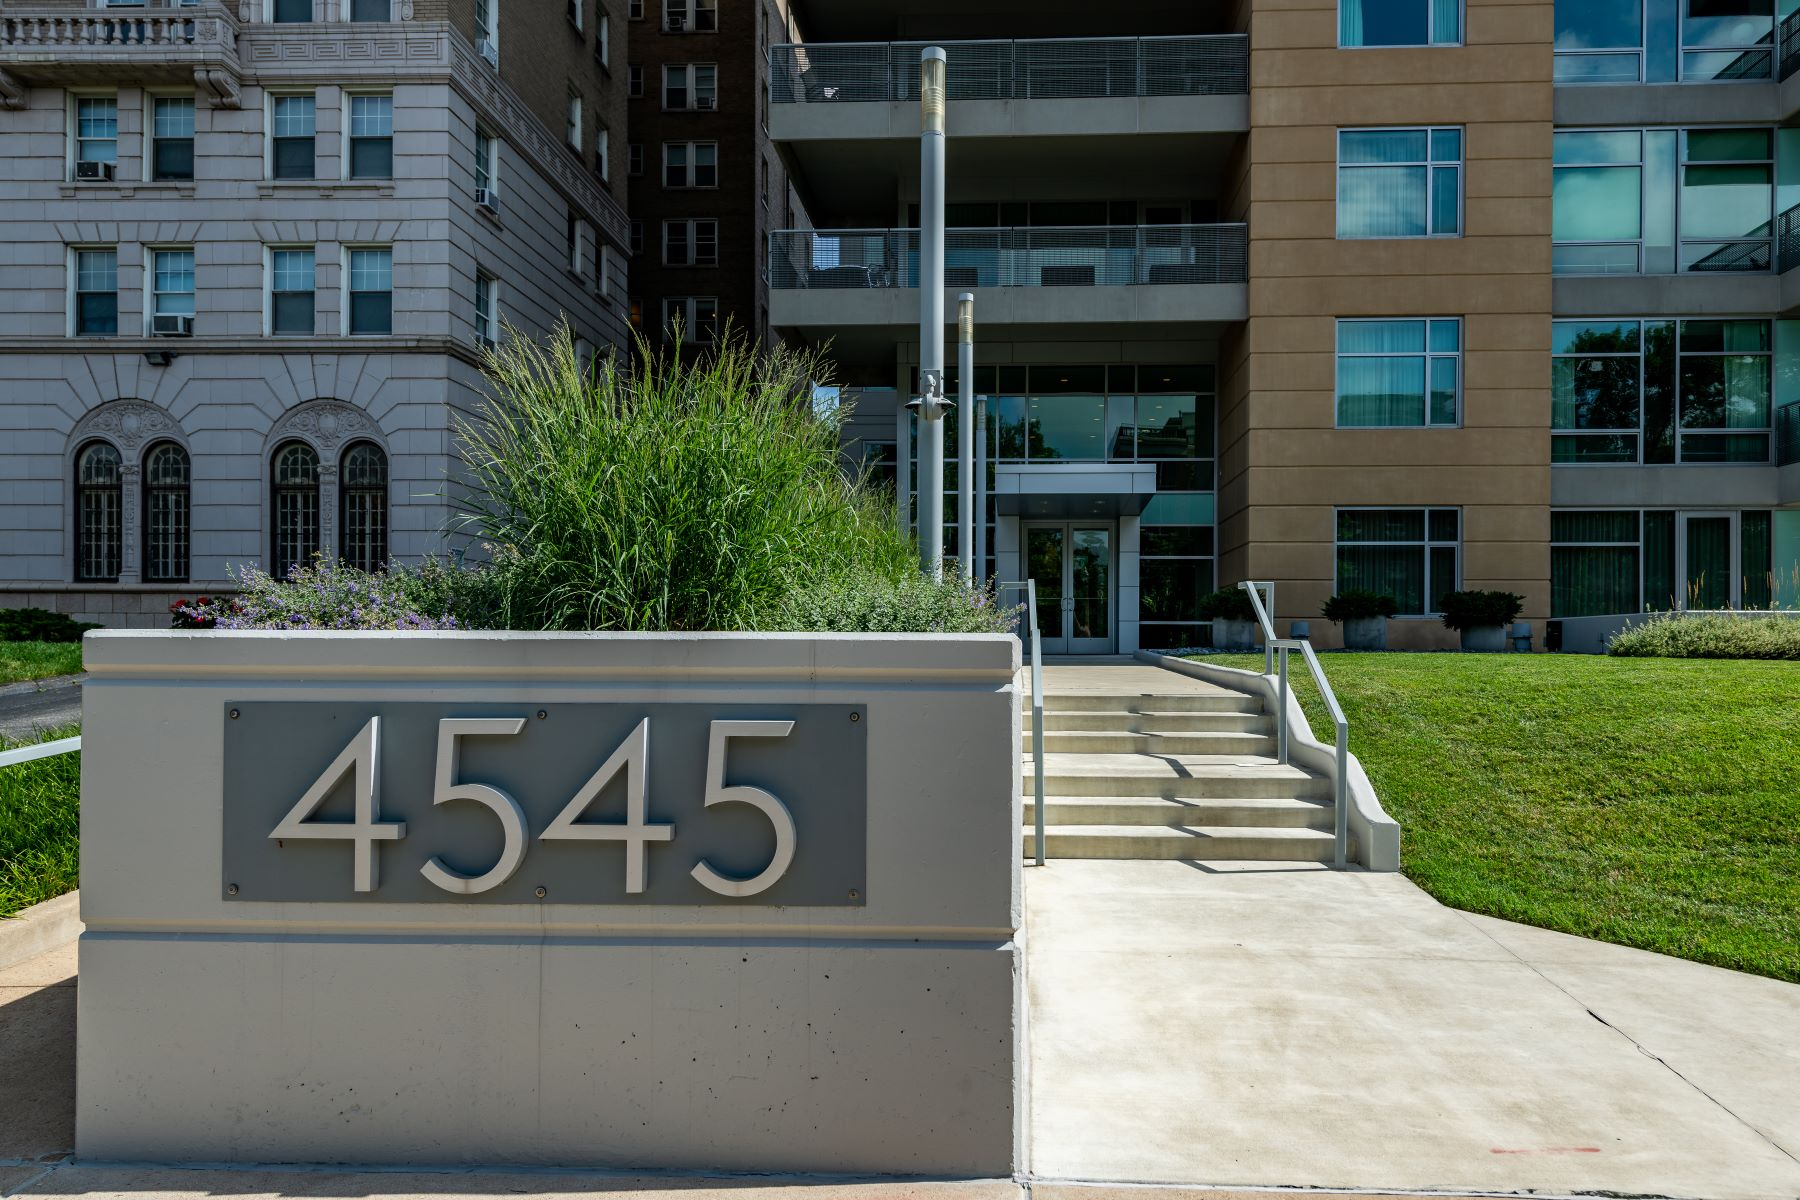 Property for Sale at A Central West End Oasis 4545 Lindell Boulevard, #14 St. Louis, Missouri 63108 United States